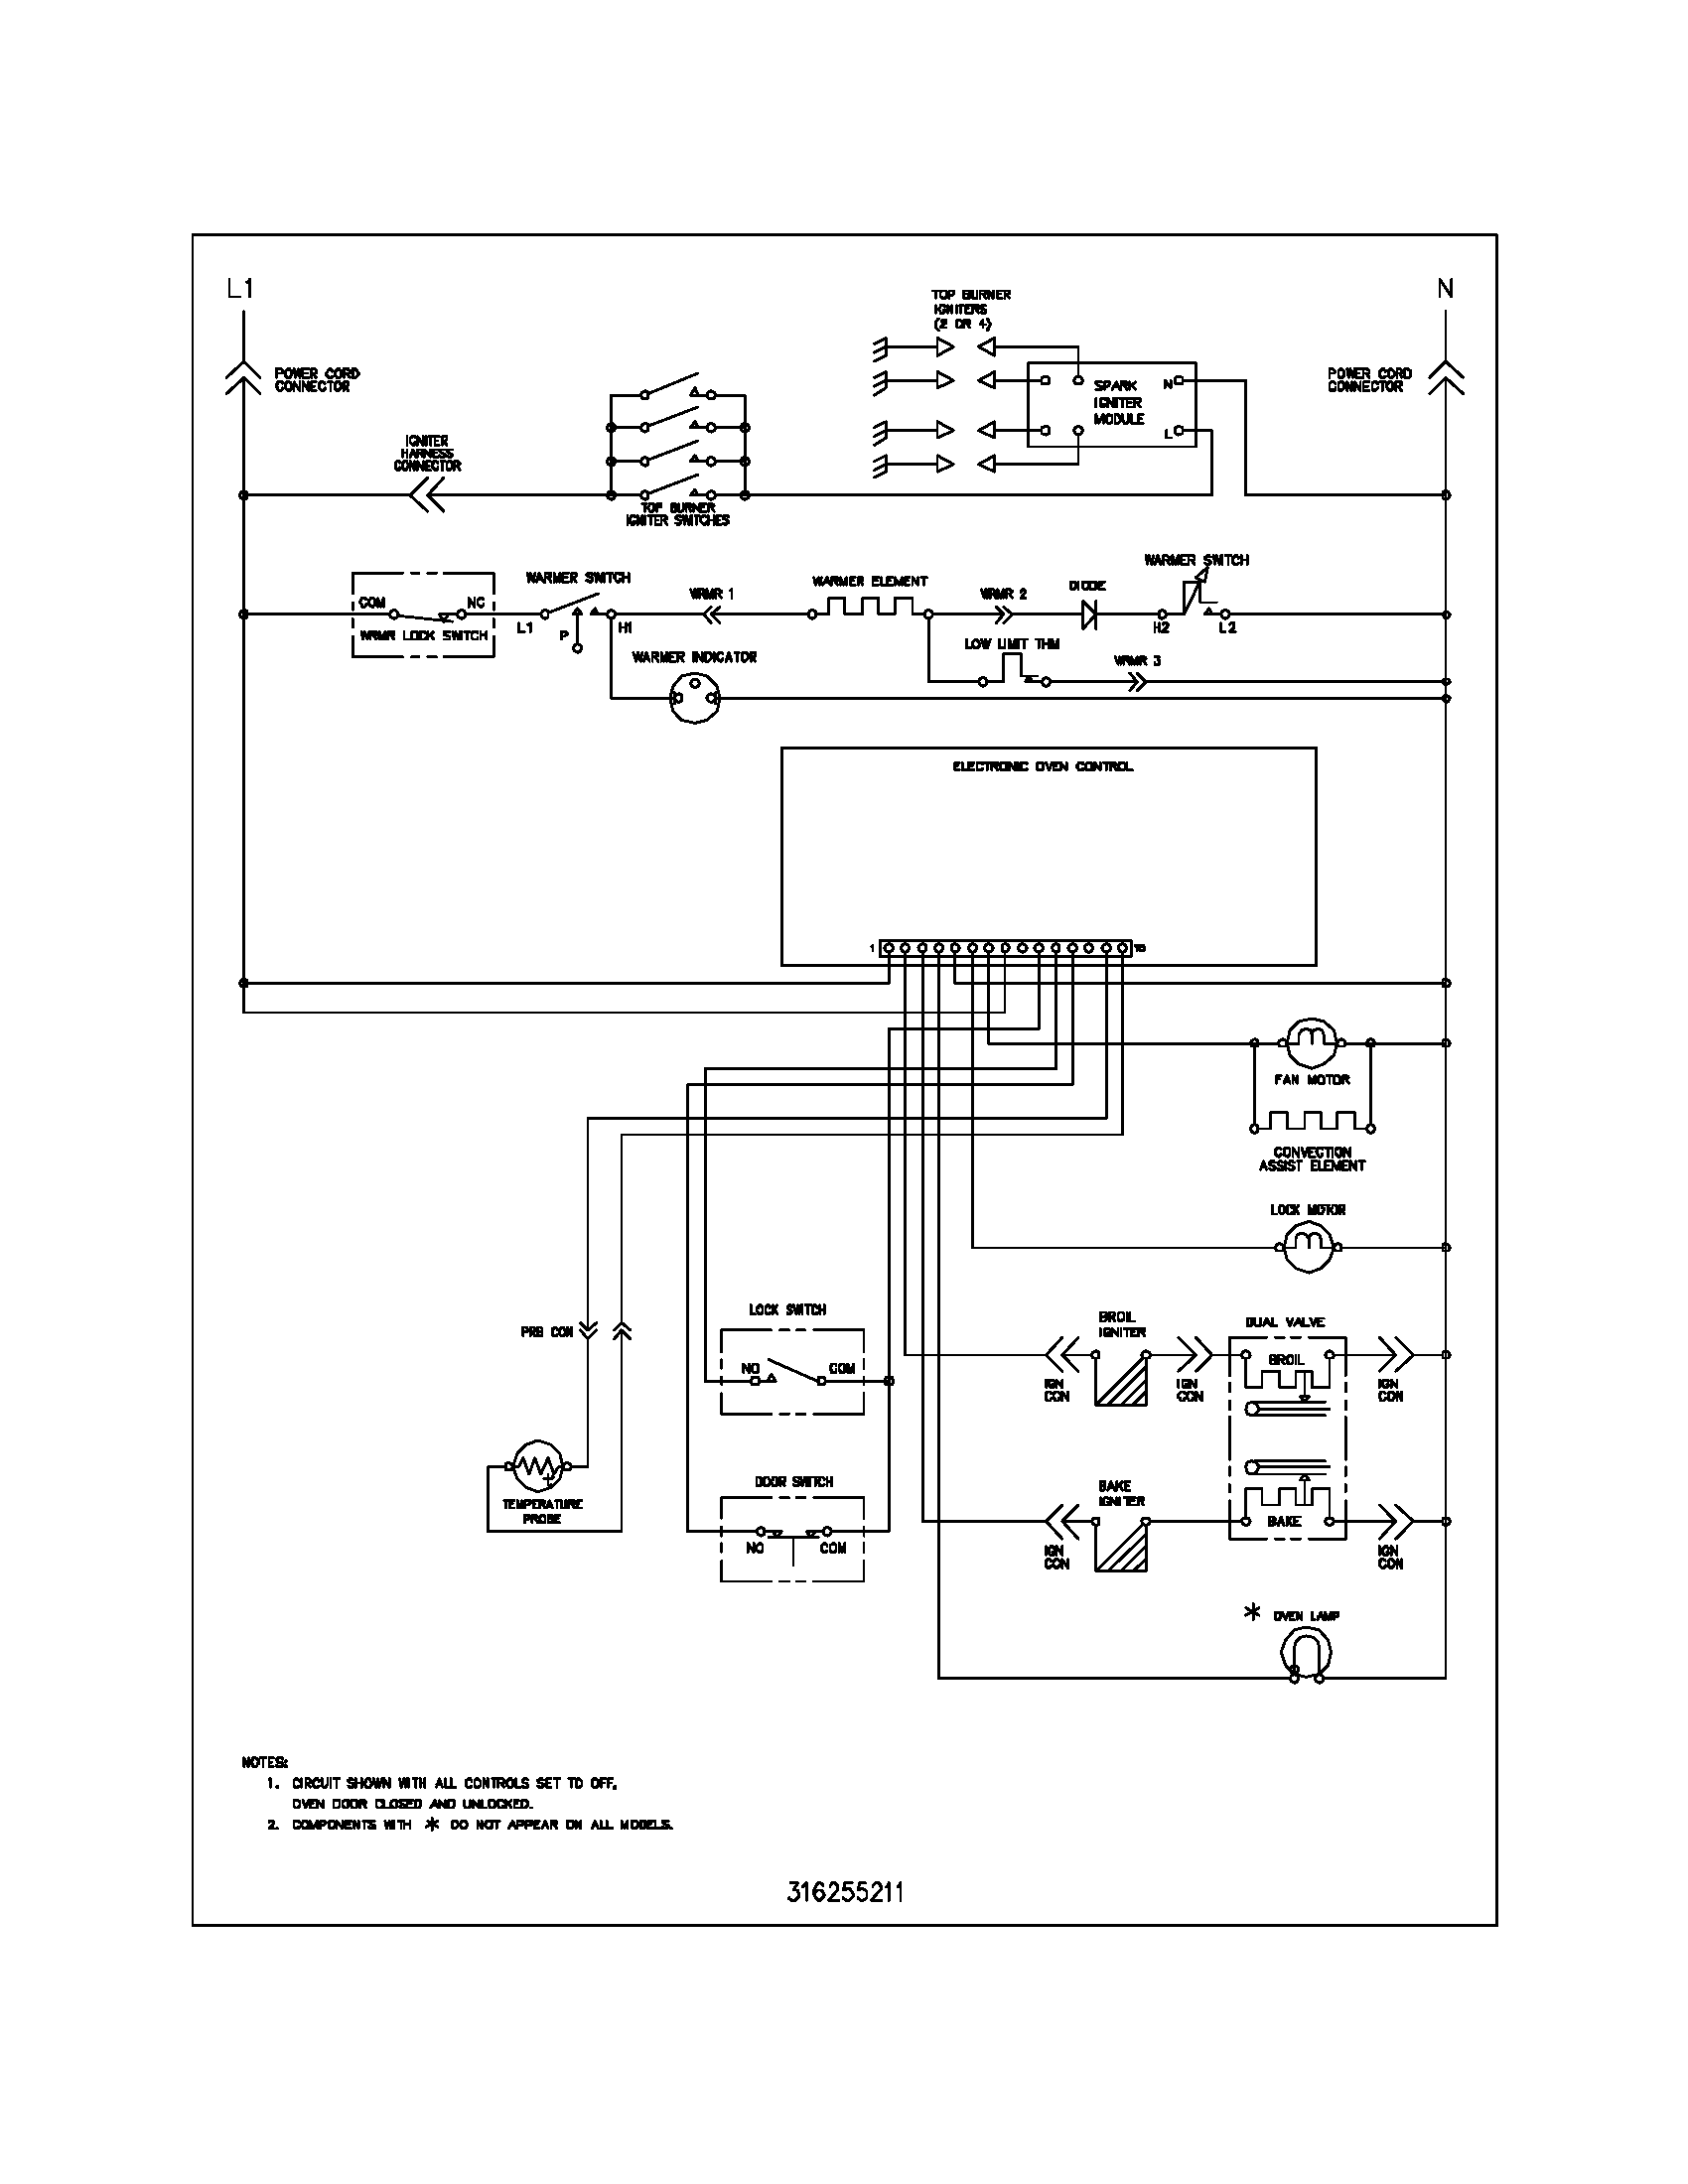 wiring schematic parts frigidaire plgf389ccc gas range timer stove clocks and appliance old gas furnace wiring diagram at bayanpartner.co